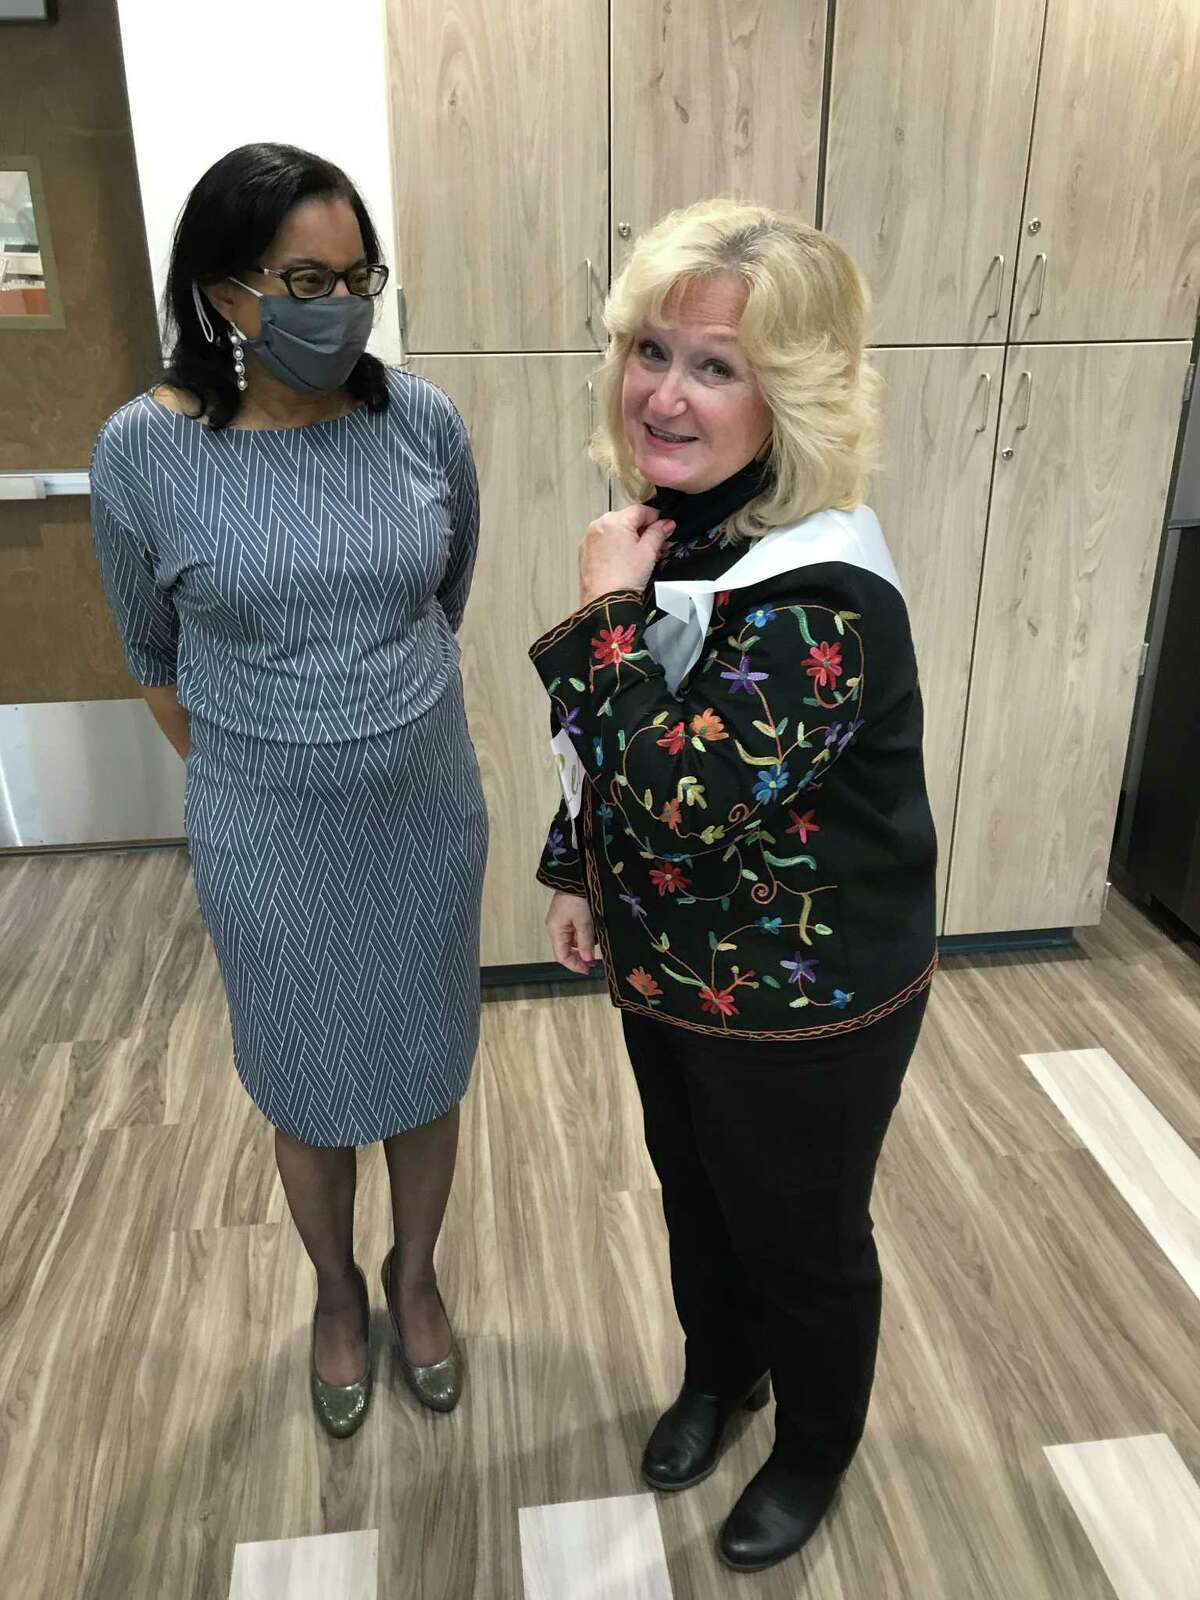 Youth Services Program Assistant Marcia Sacco, right, speaking with Bonnie Price, Cromwell's human resources coordinator, during a get-together marking Sacco's retirement.